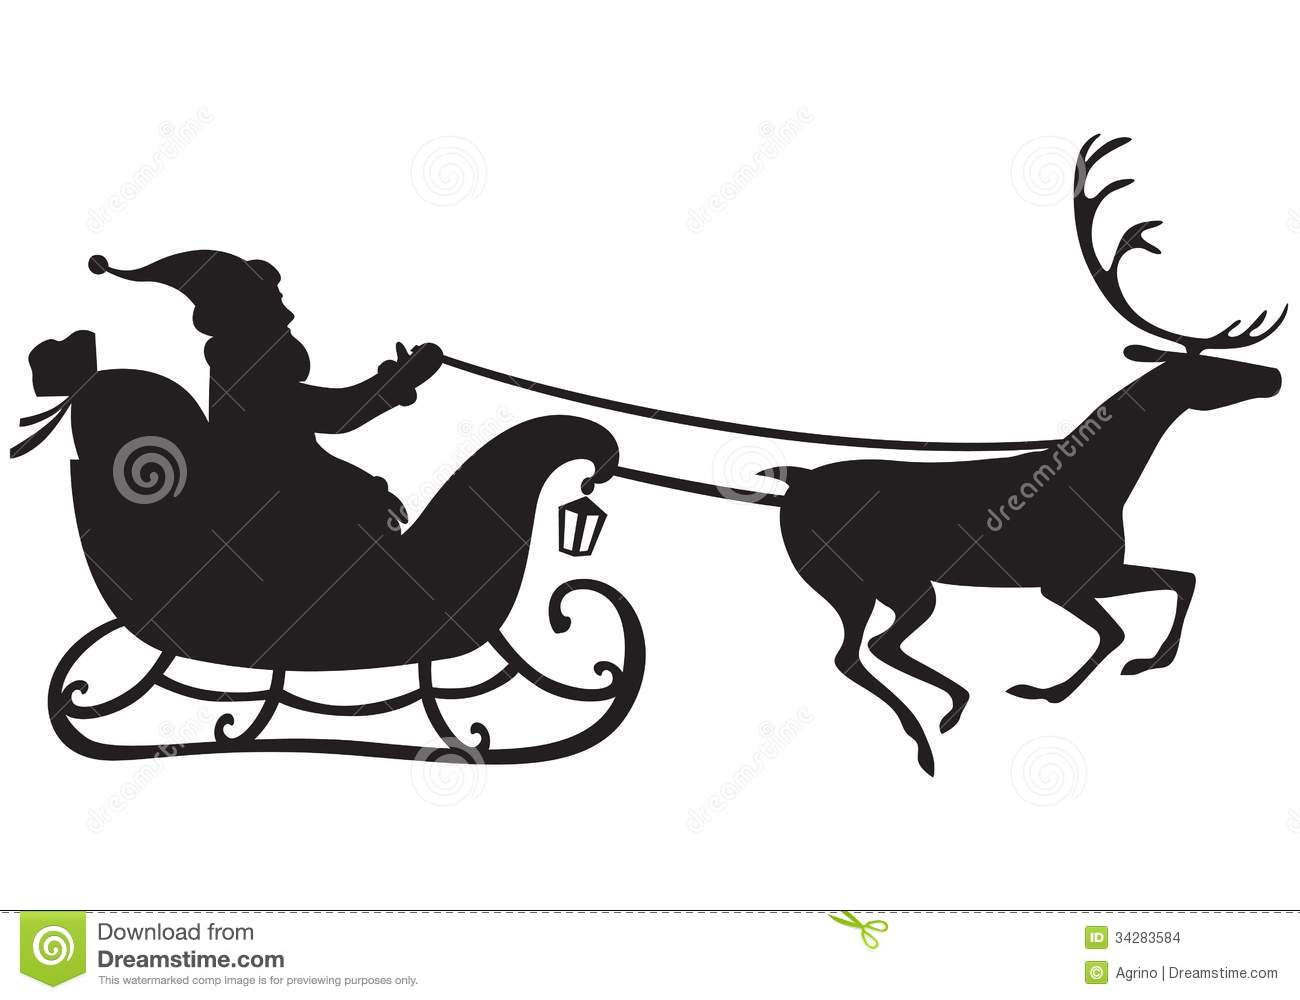 Silhouette of Santa Claus riding a sleigh pulled by reindeer, and ...